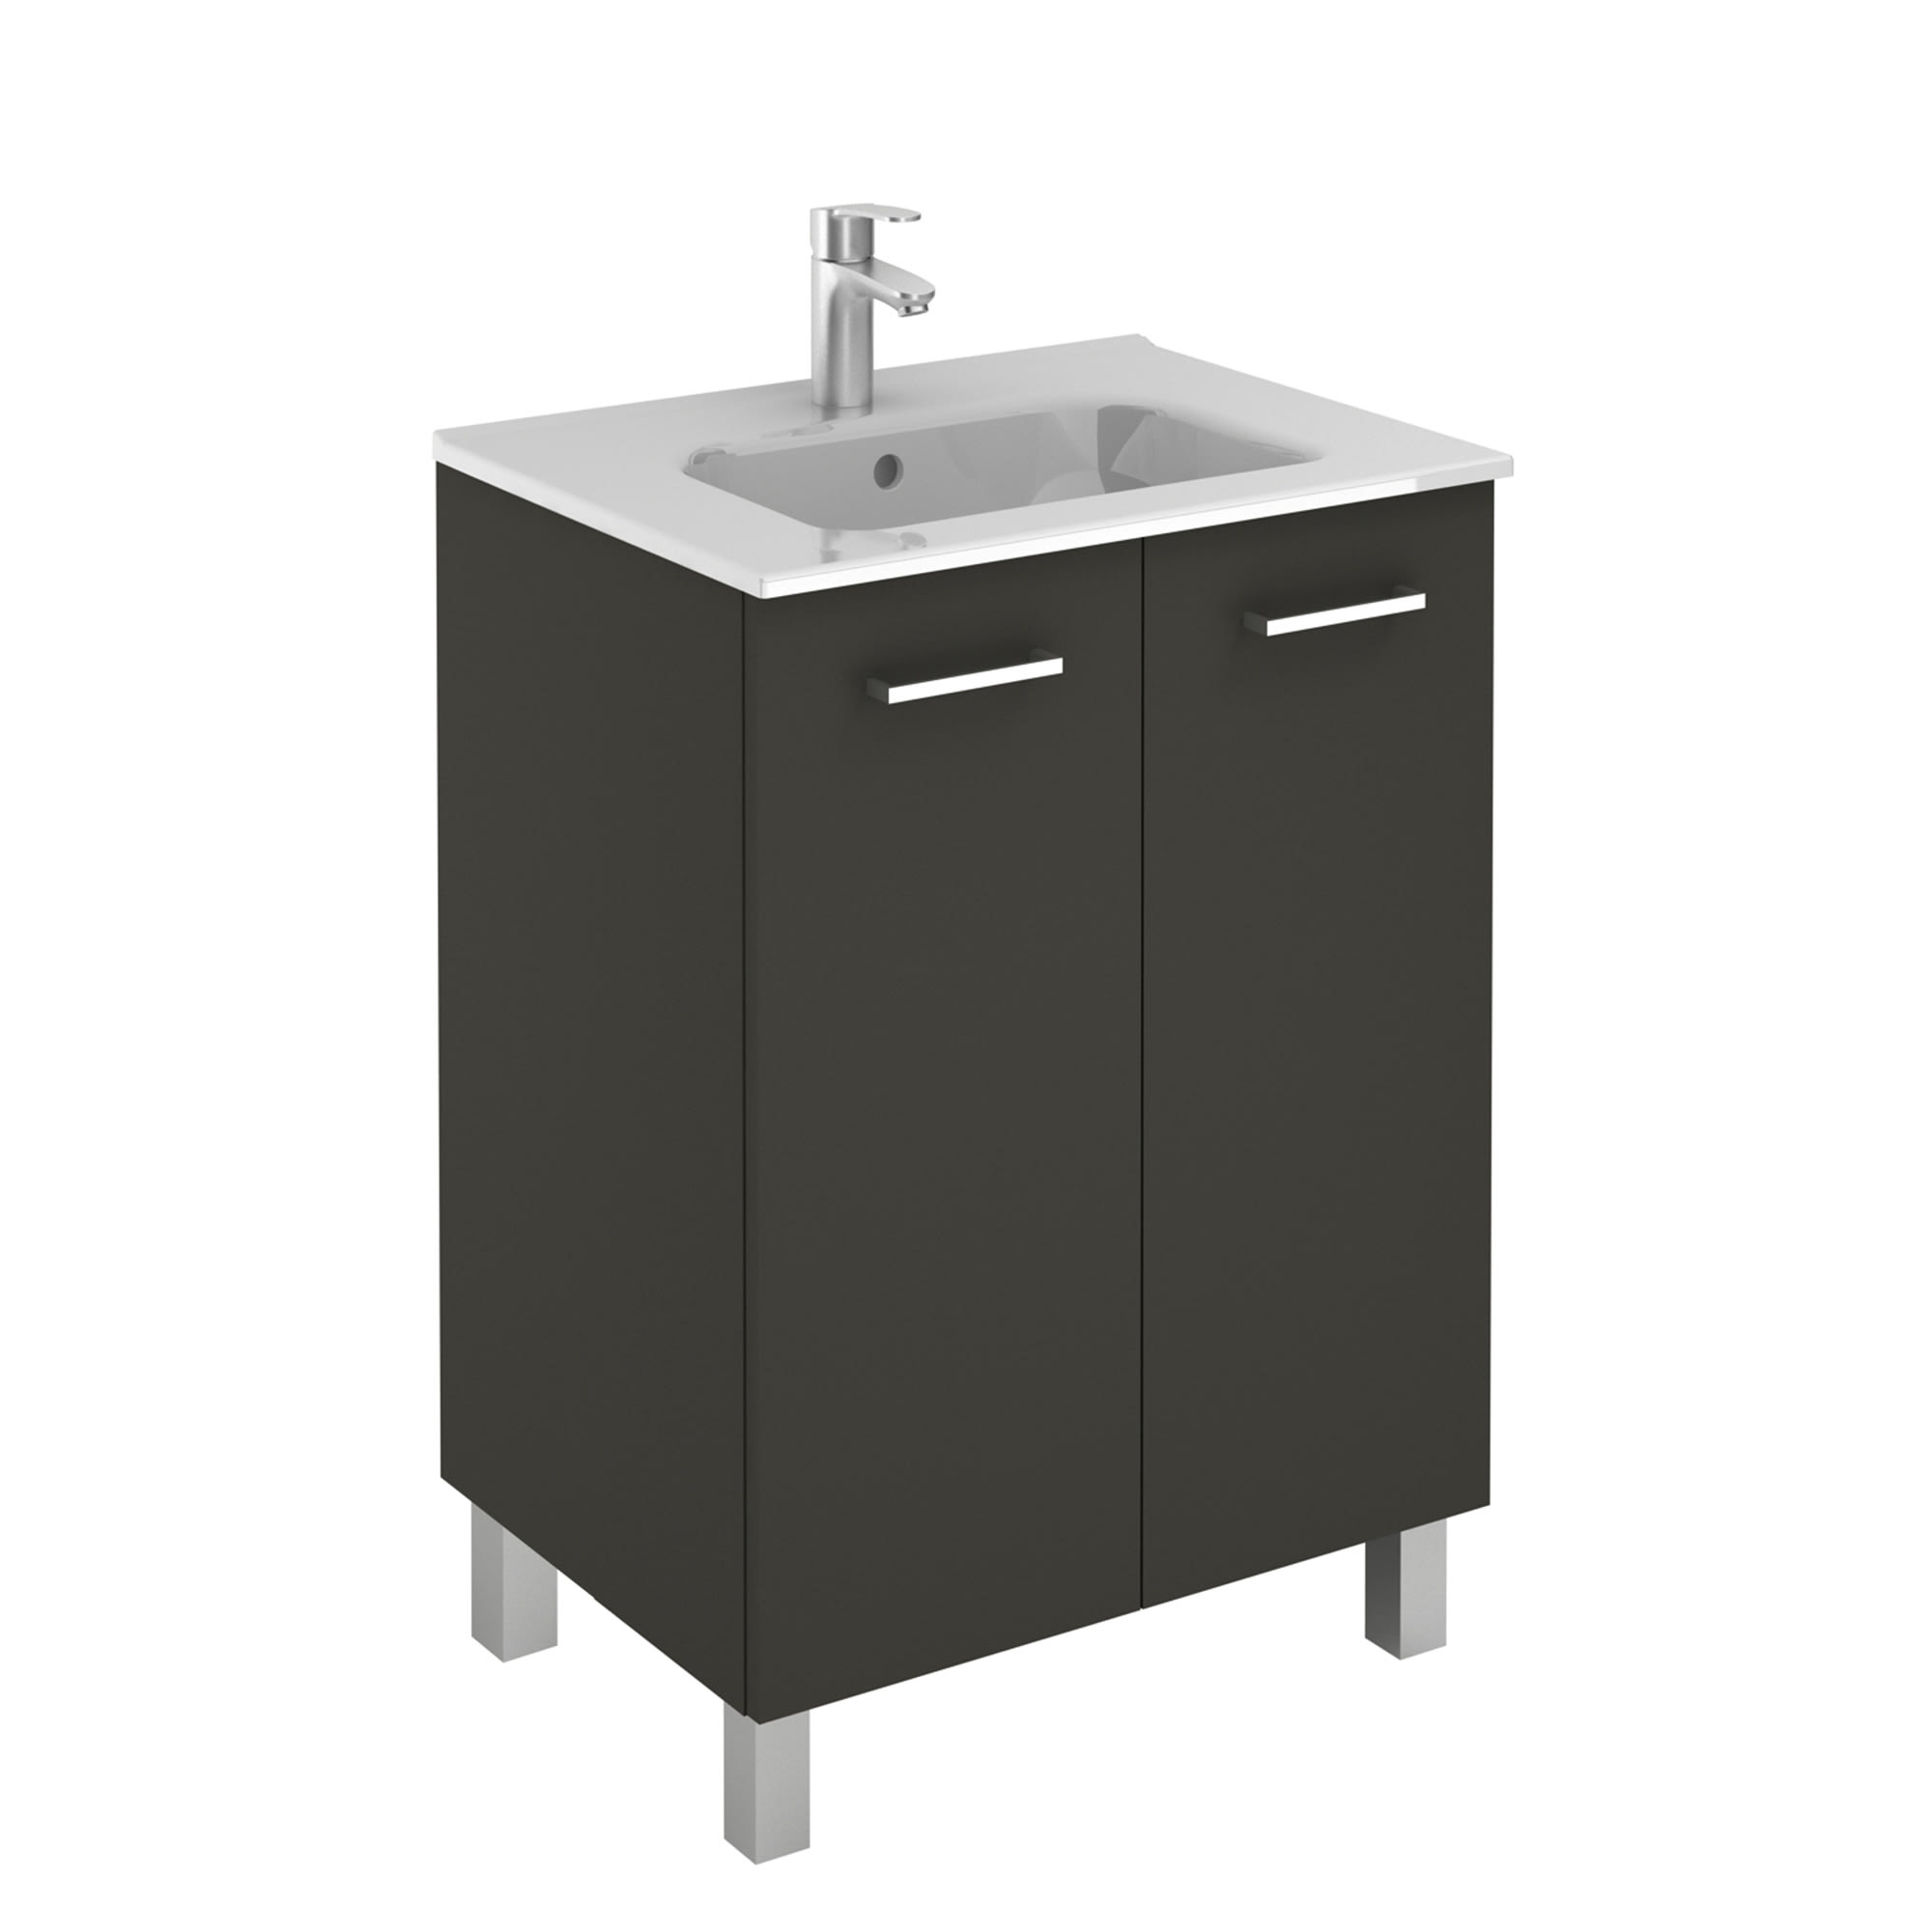 Ws Bath Collections Logic 60 An Anthracite Logic Vanities 18 Free Standing Single Basin Vanity Set With Ceramic Vanity Top Faucetdirect Com